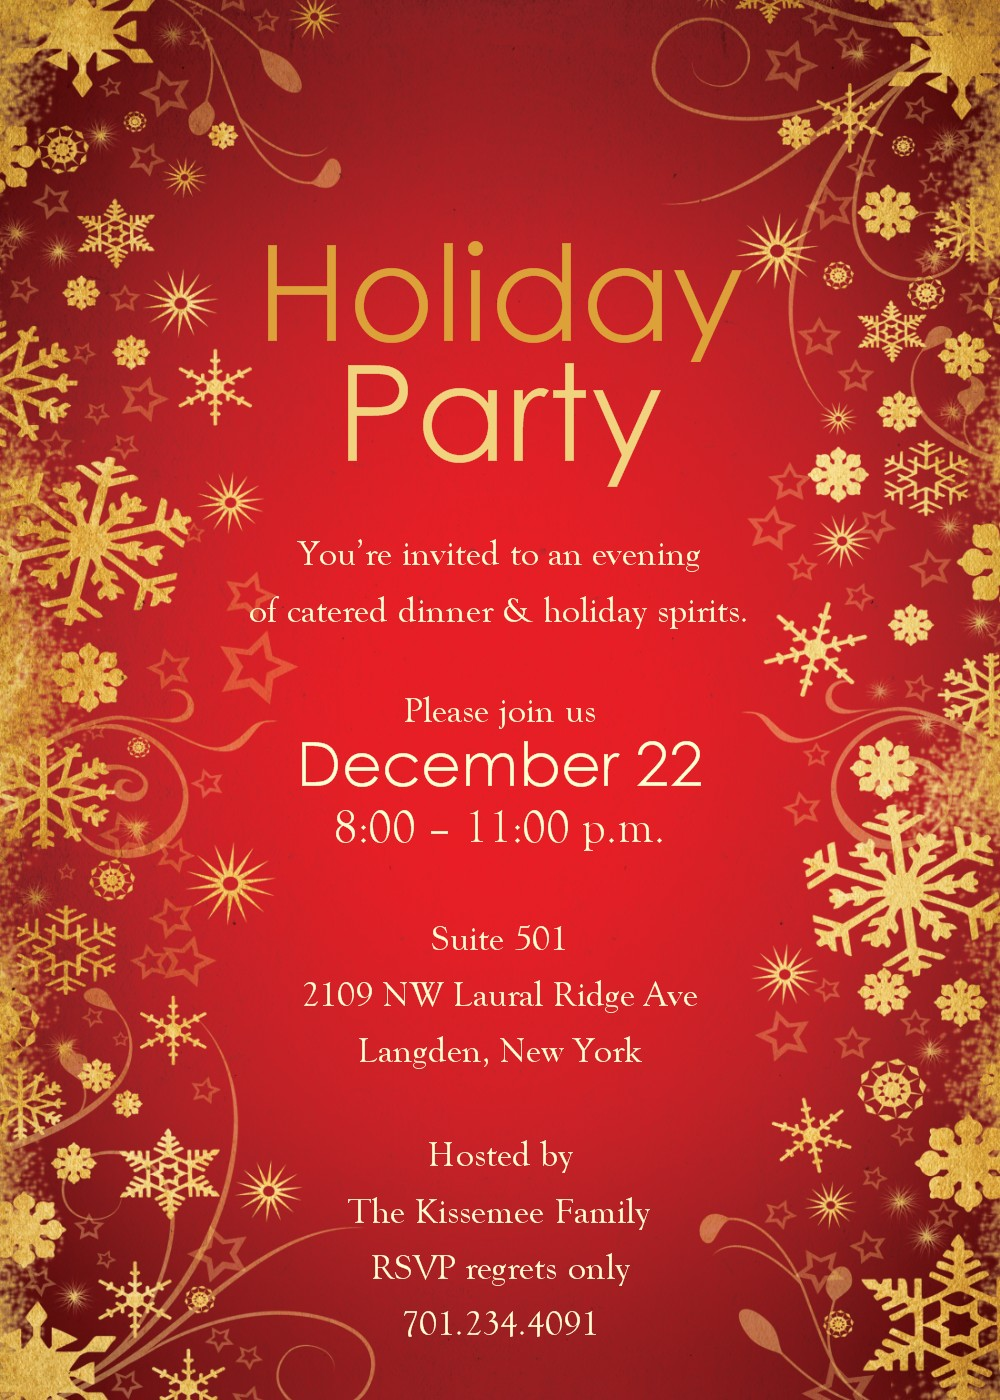 17 Holiday Party Template Images Christmas Holiday Party